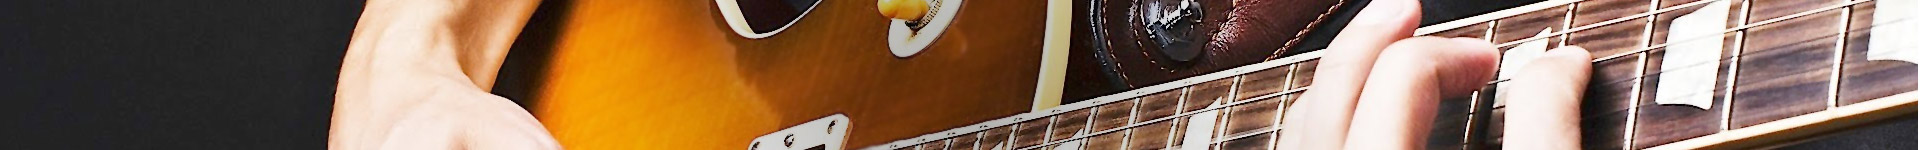 Acoustic guitars | Buy cheap guitars in top quality